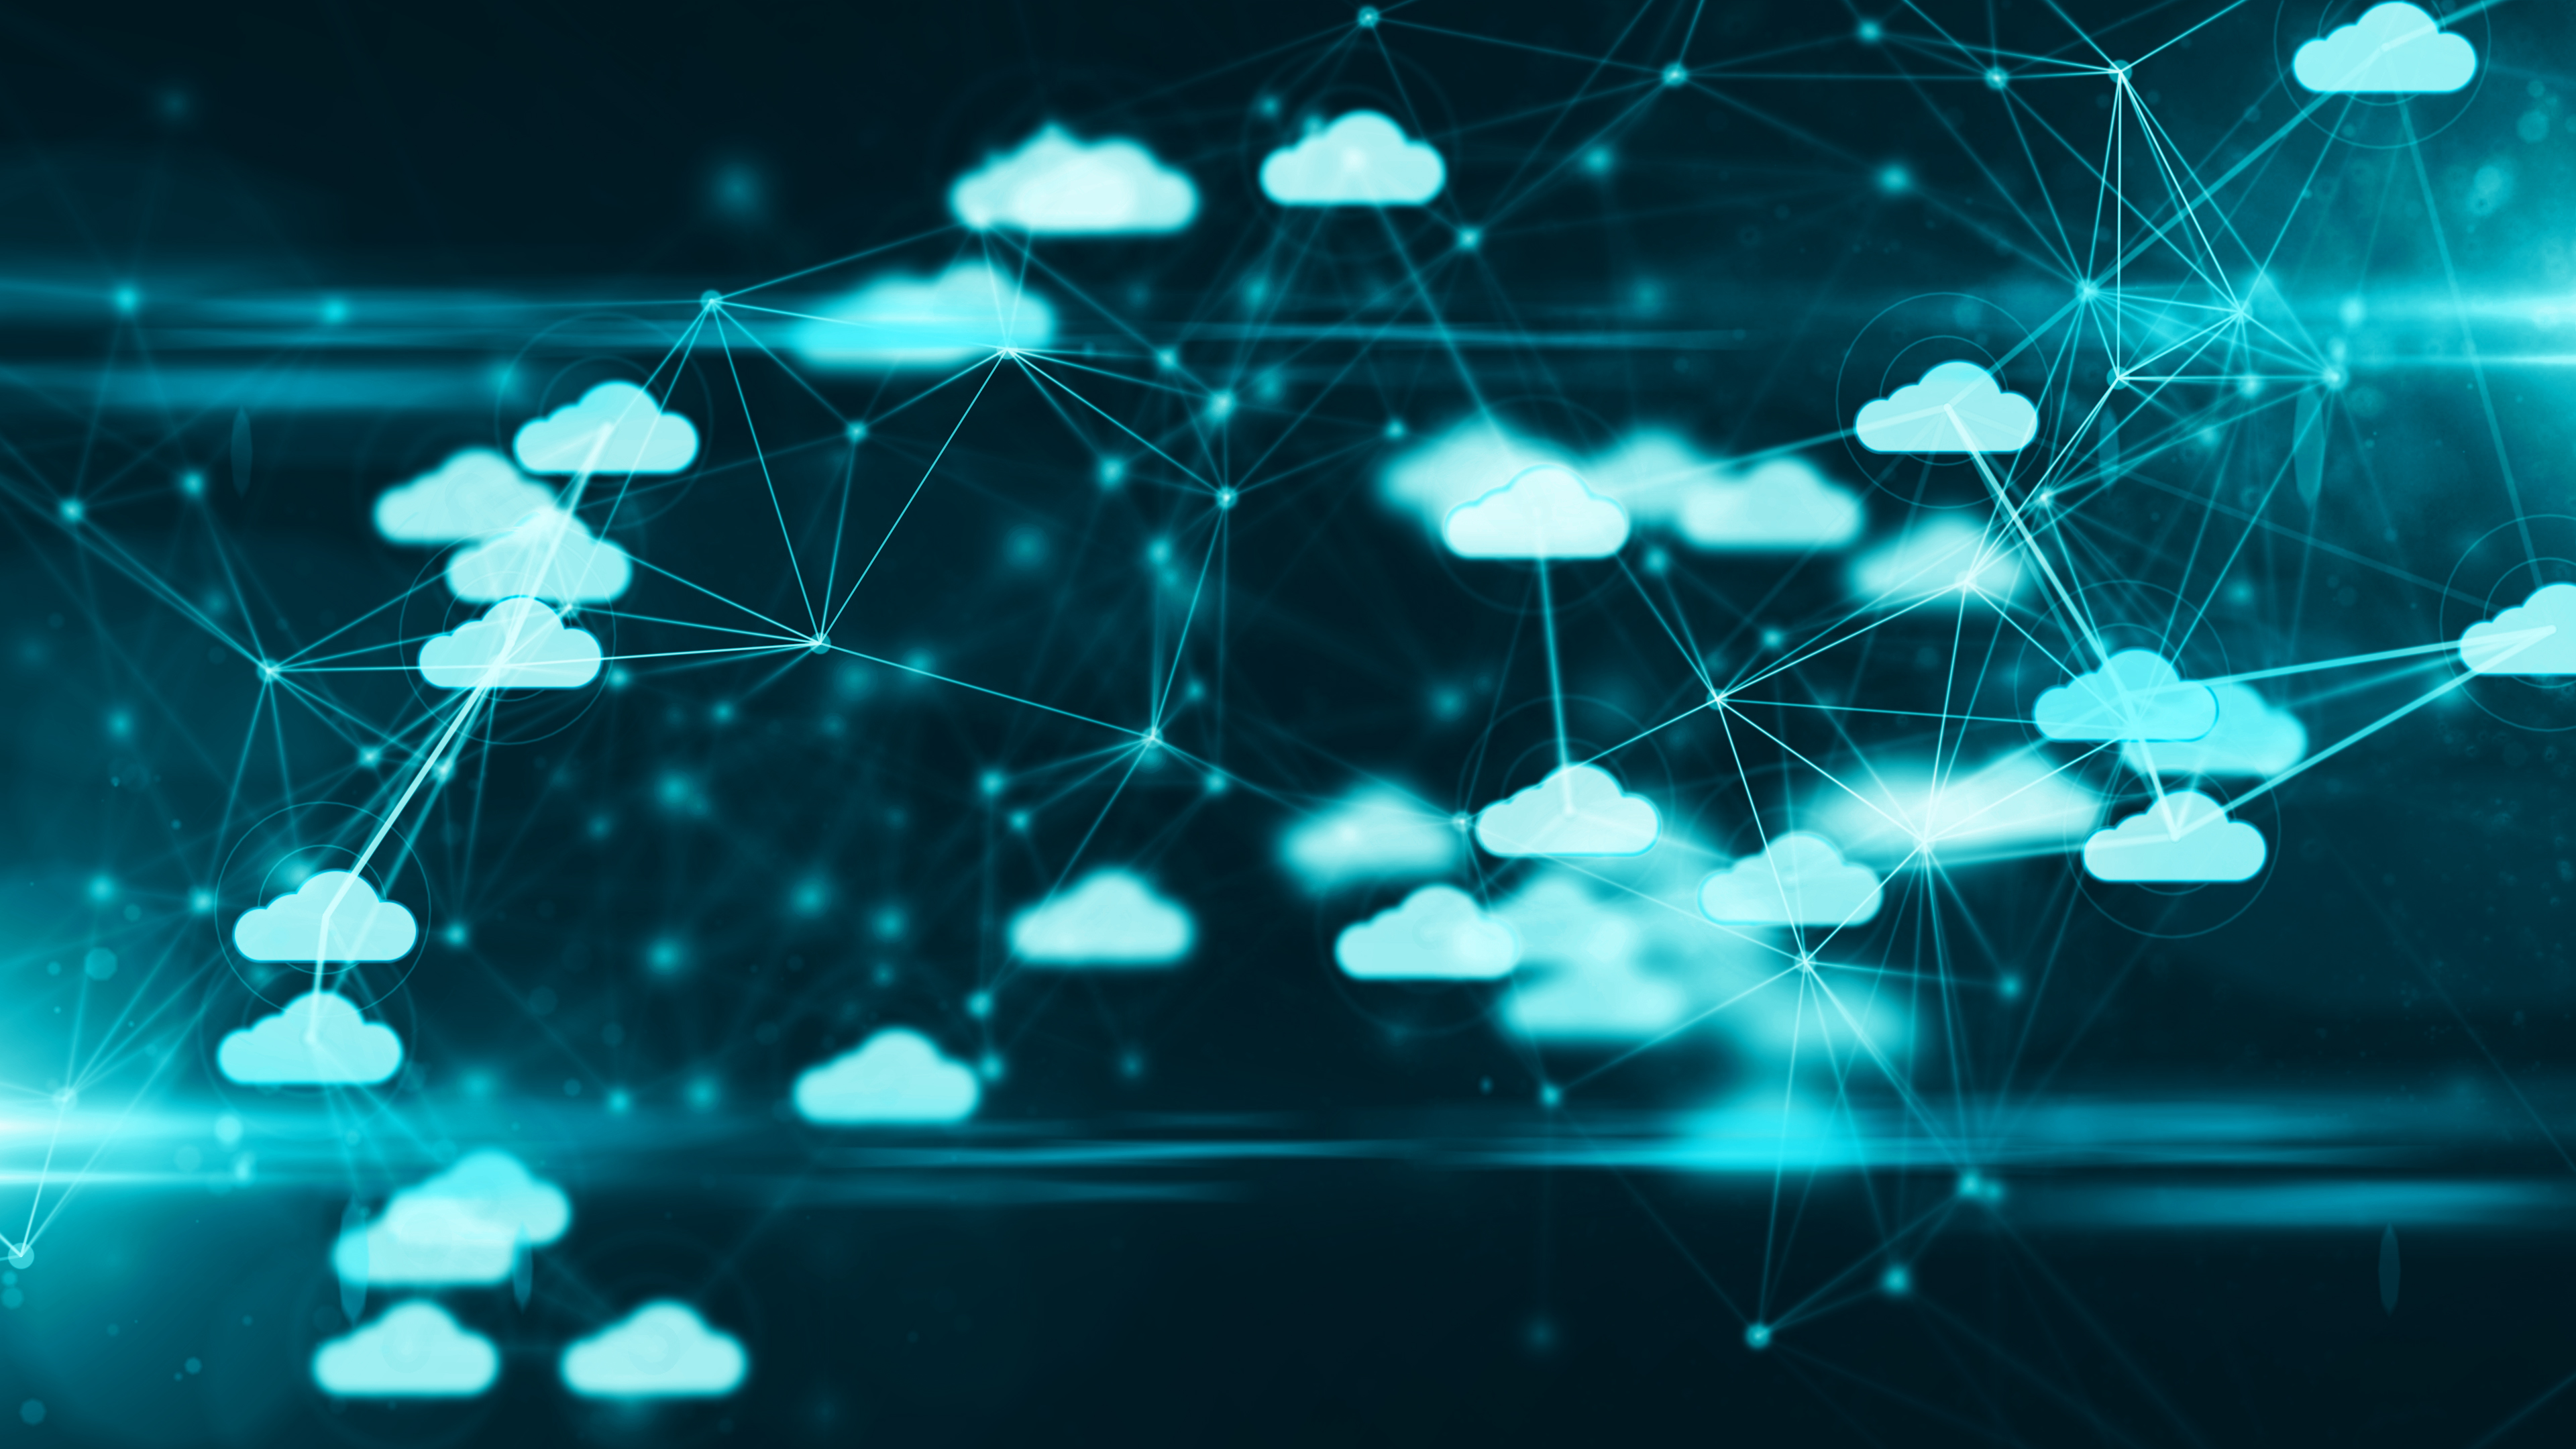 Open Networking & Distributed Cloud in the News